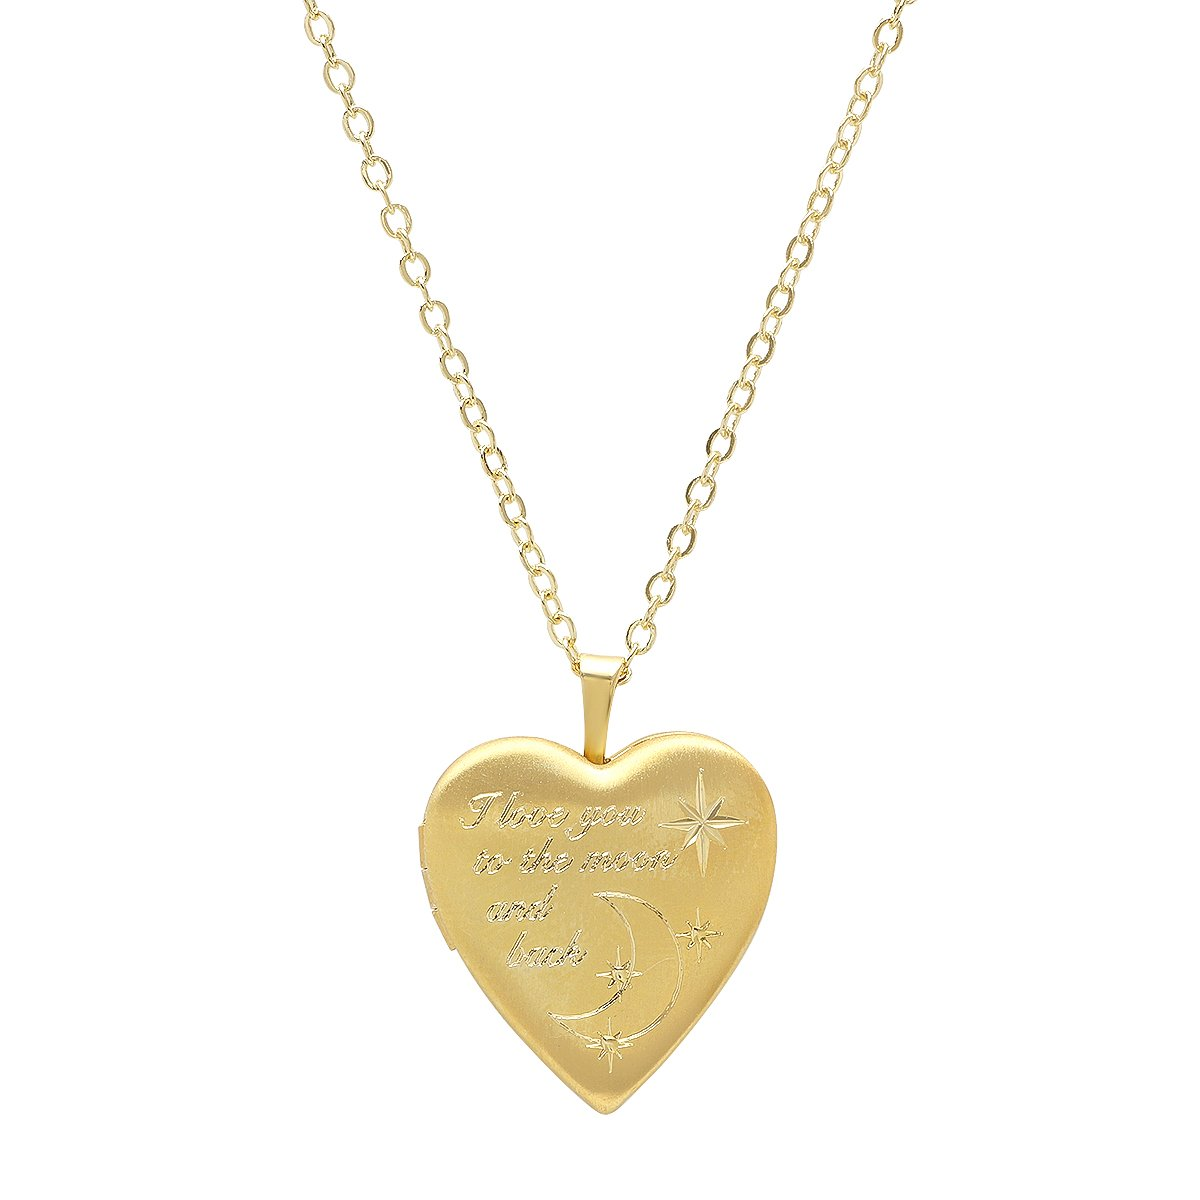 Pori Jewelers 925 Sterling Silver I Love you to the moon and back Heart Locket Necklace in Diamond Cut 18'' chain (Gold)